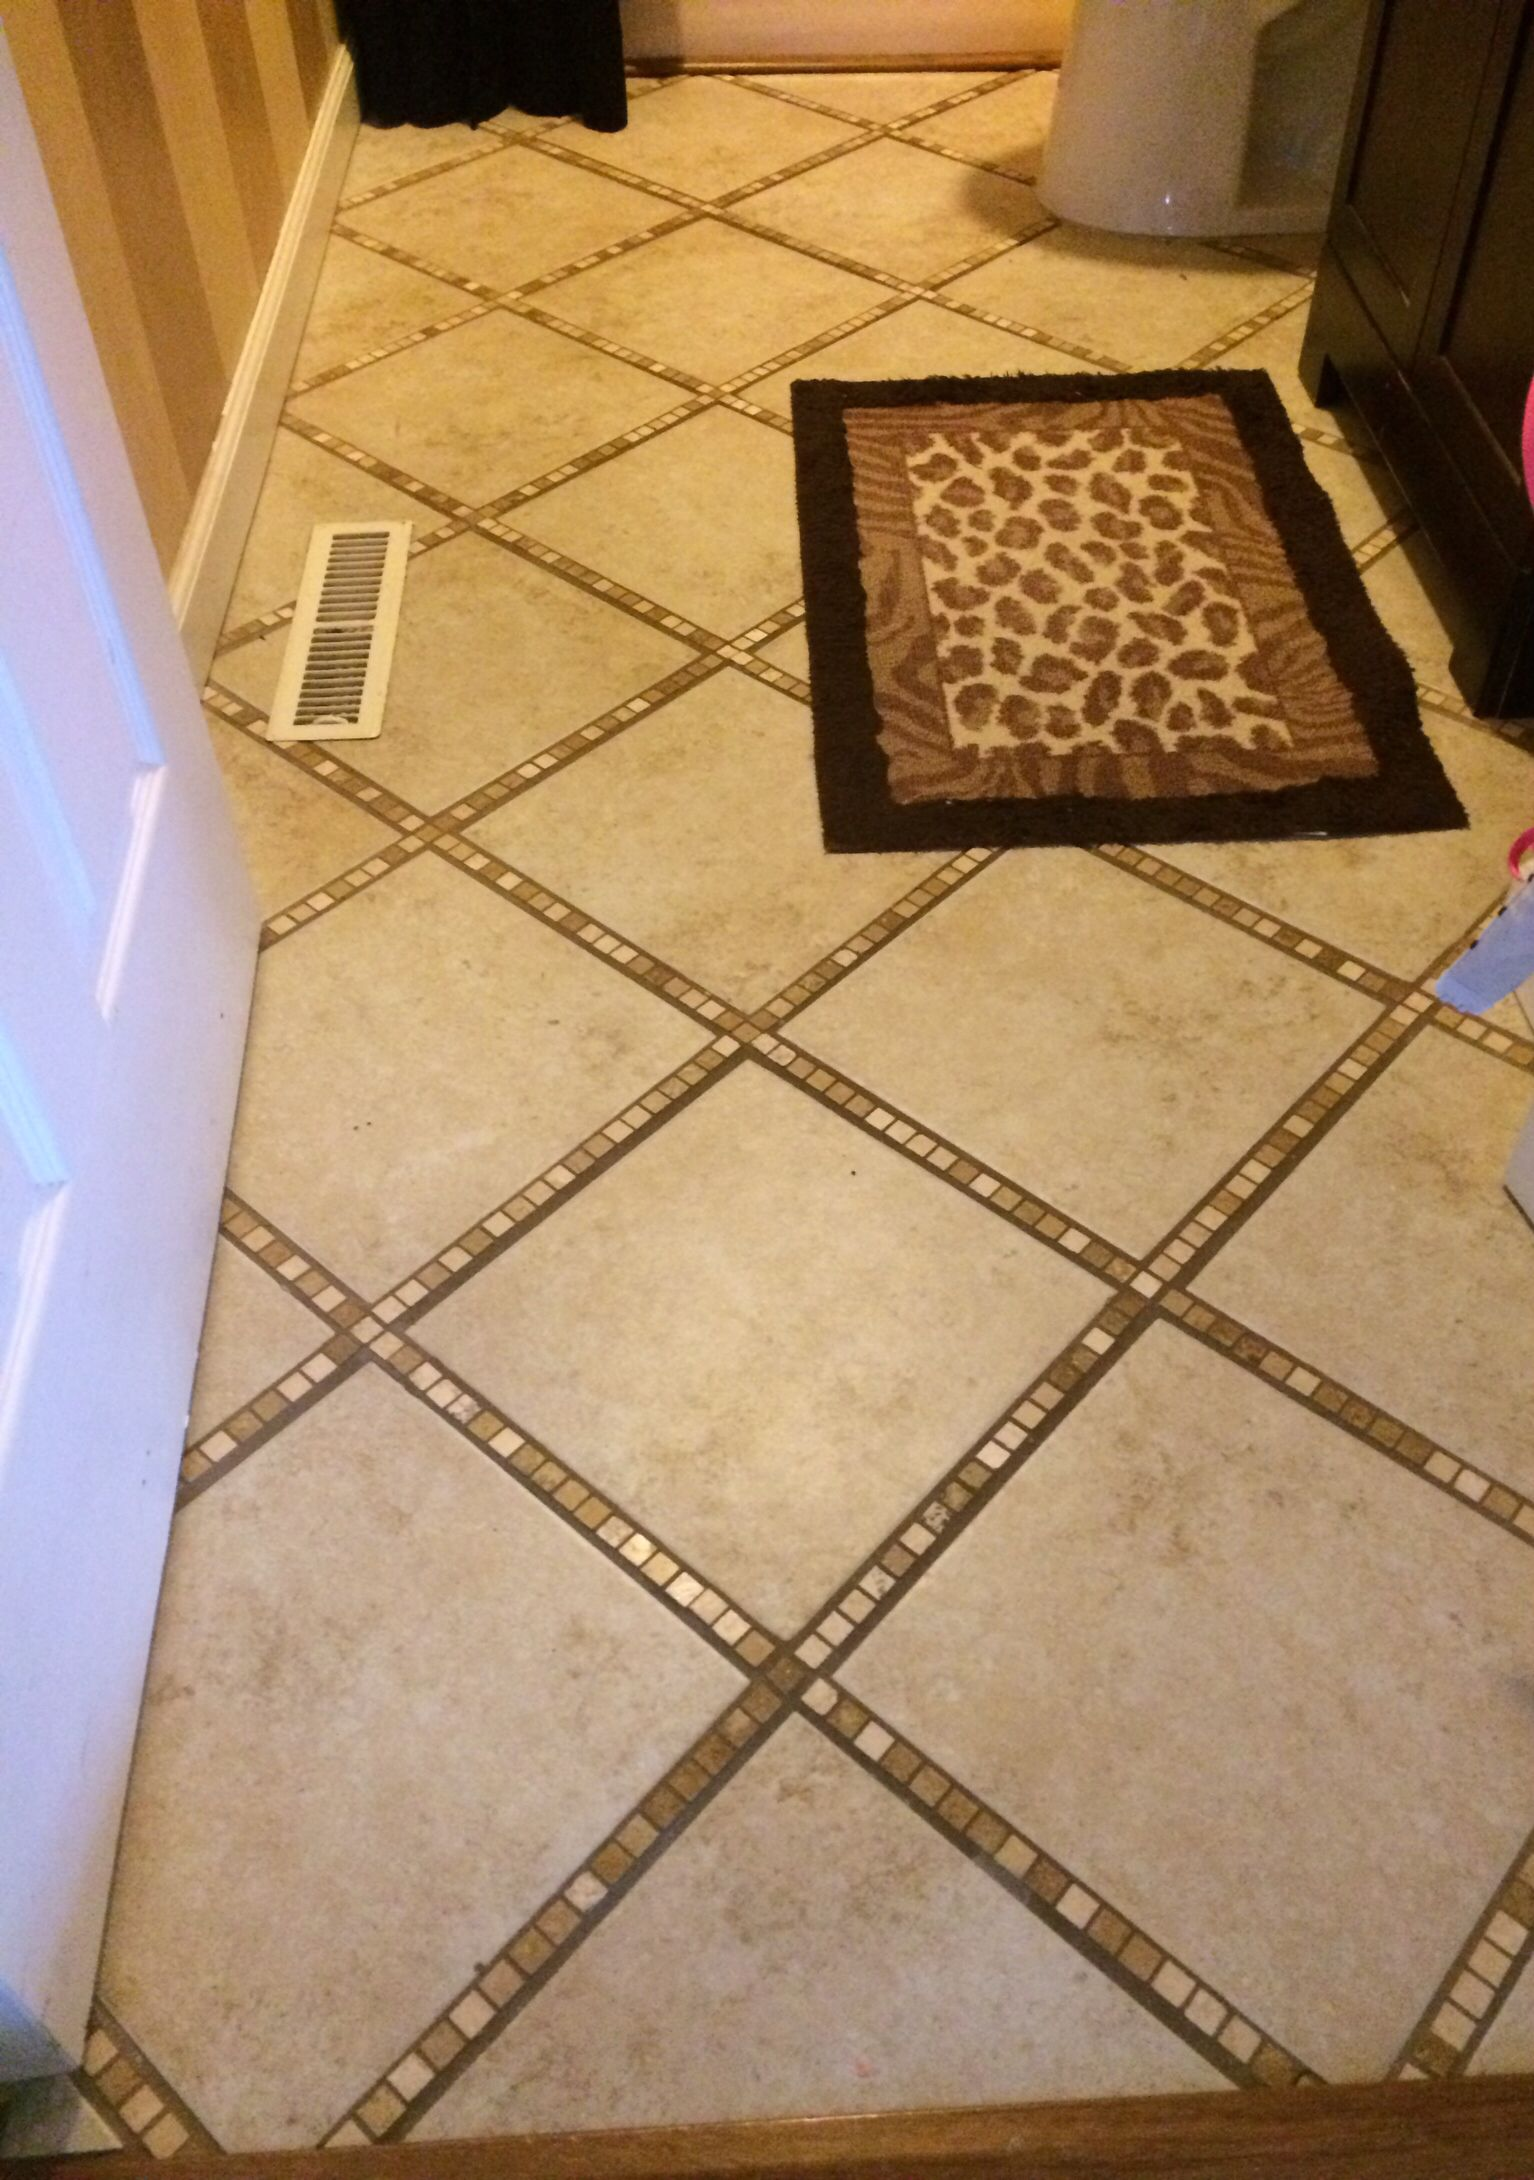 I Tiled My Bathroom Floor In A Diagonal Pattern Using Tiny Mosaic Square Travertine Tiles In The Grout Linees Between The Larger X Tiles